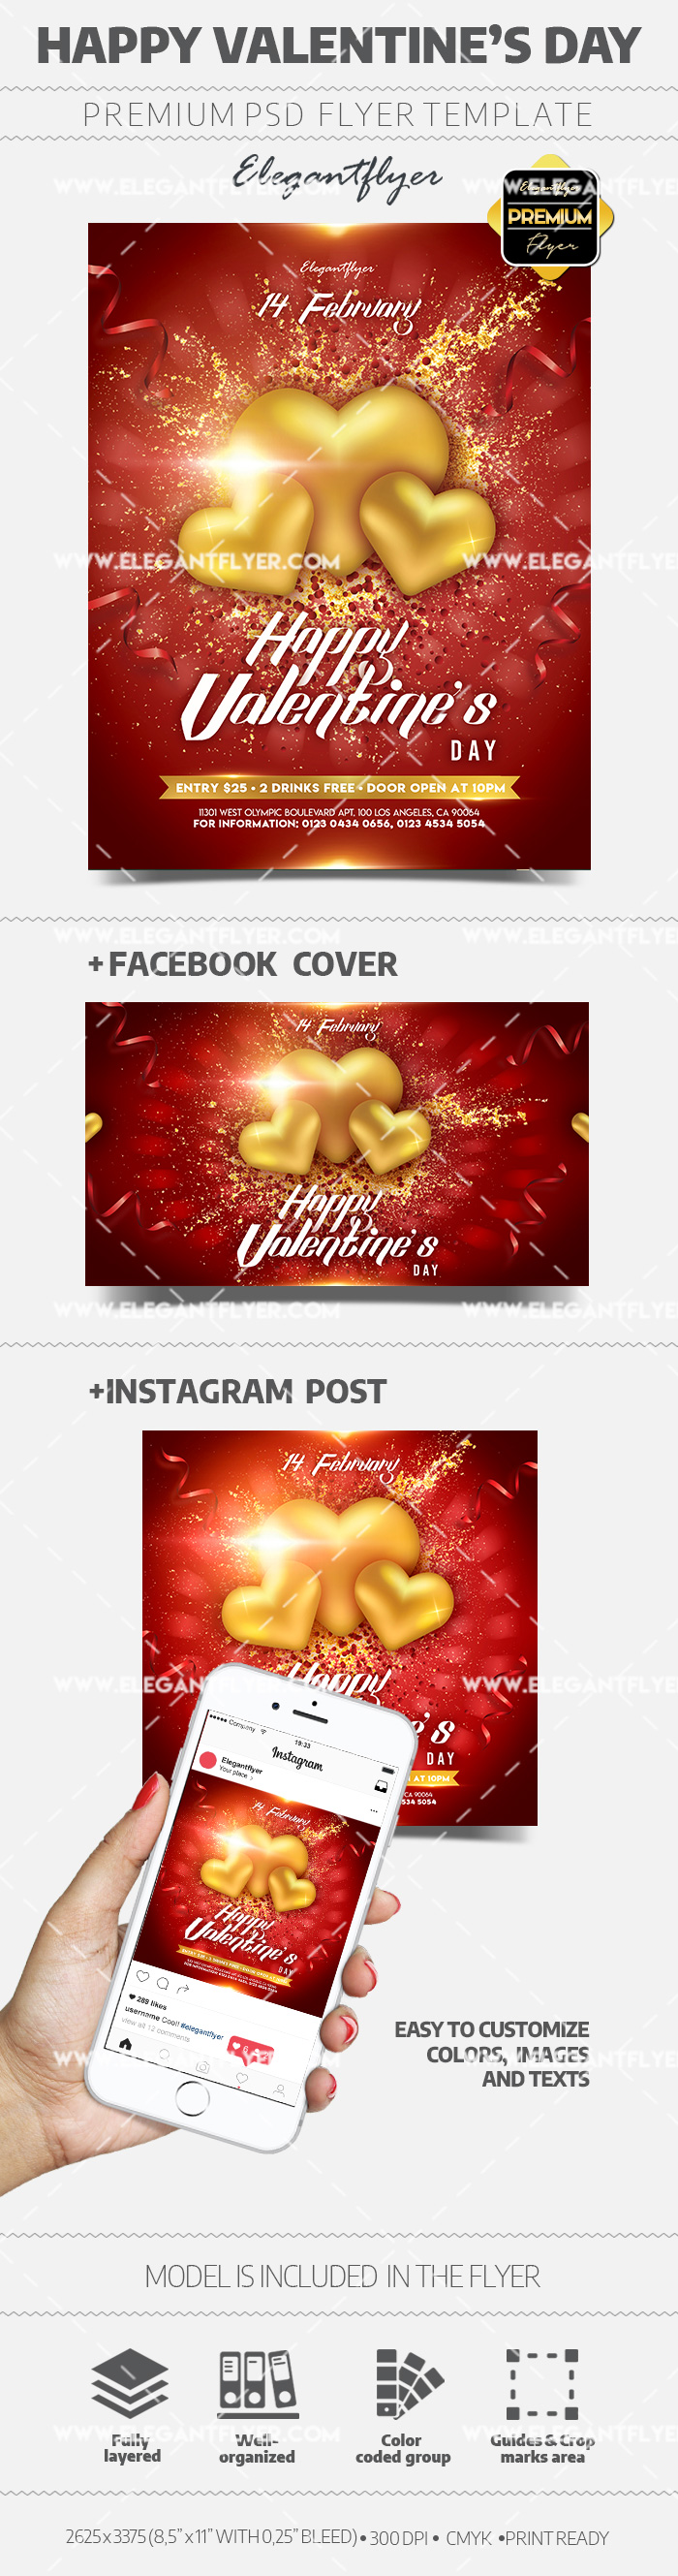 Happy Valentine's Day – PSD Flyer Template + Facebook Cover + Instagram Post